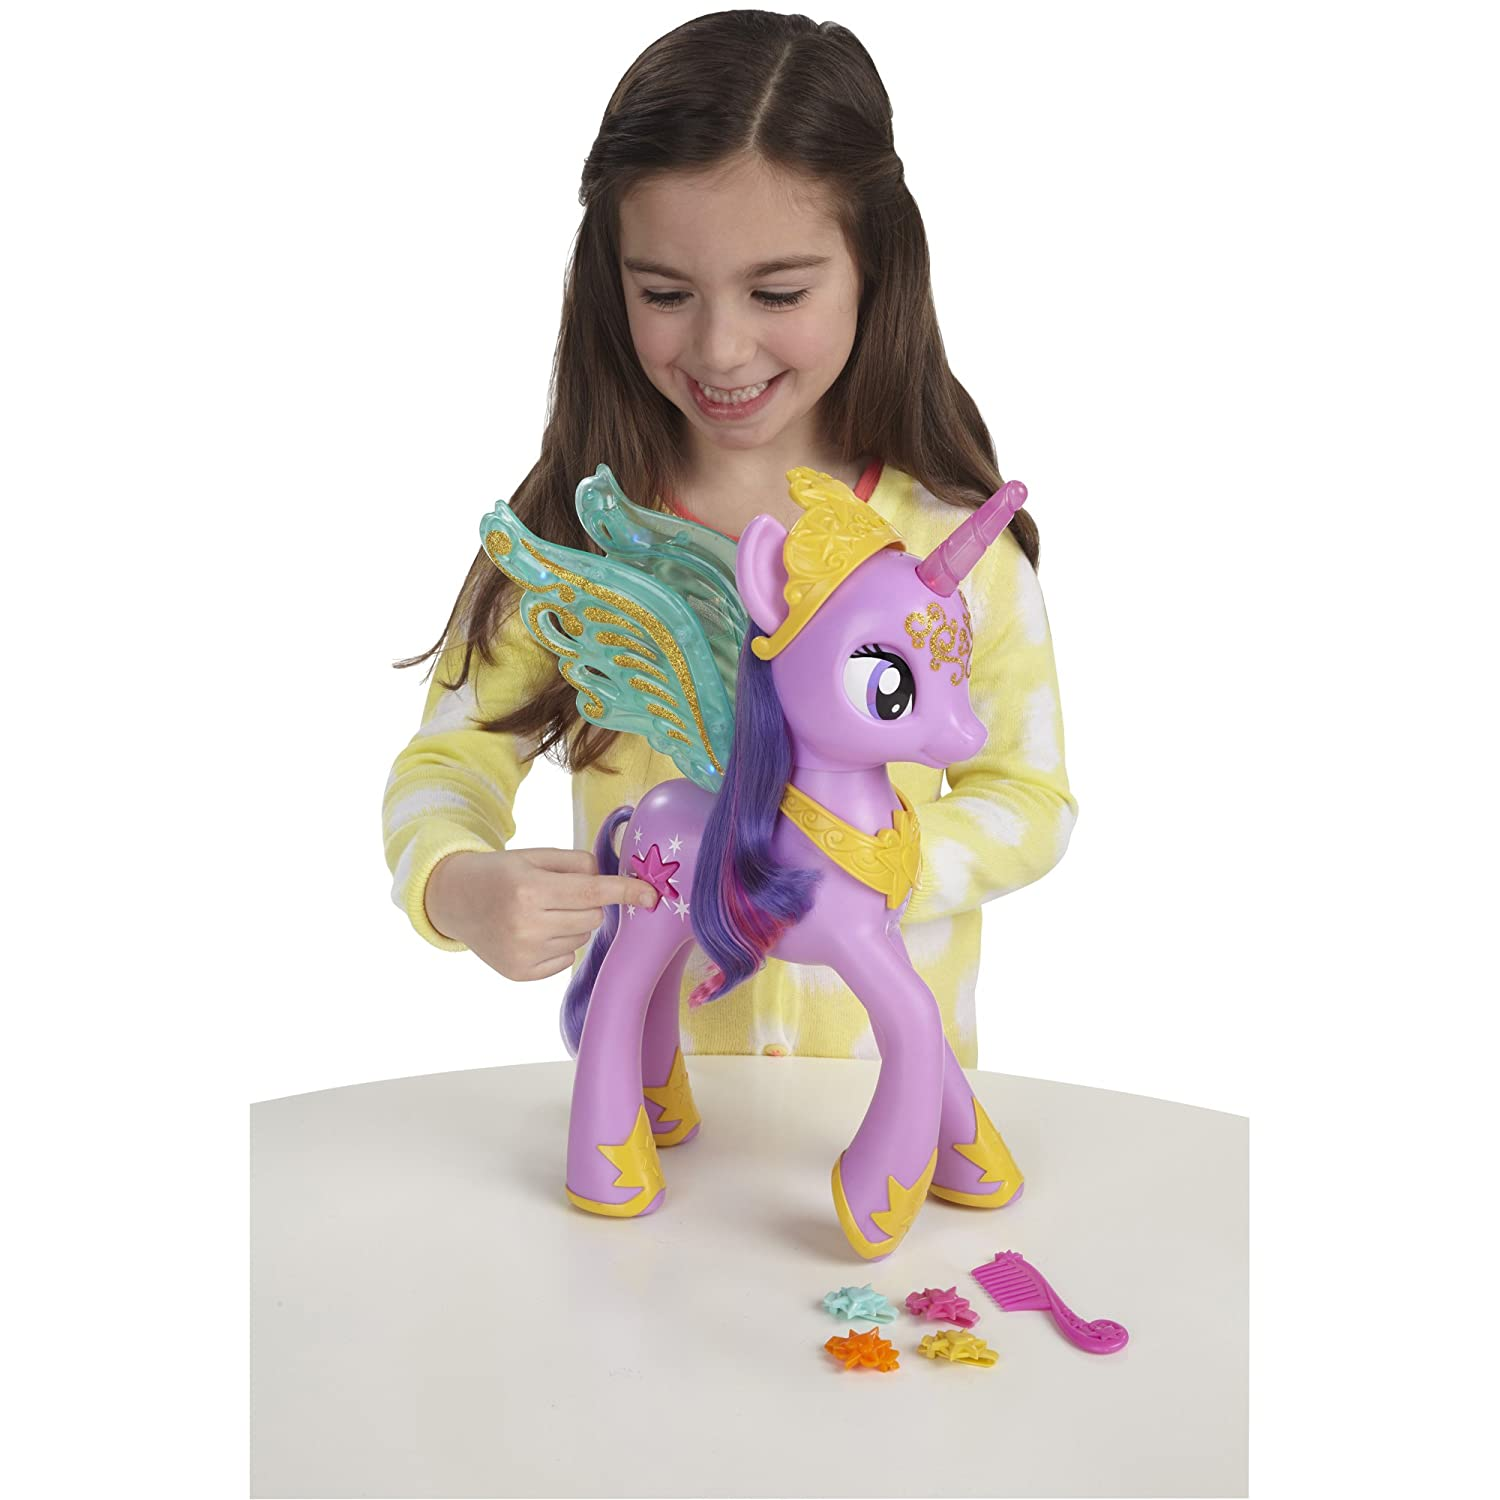 Best My Little Pony Toys And Dolls For Kids : My little pony princess twilight sparkle toy review